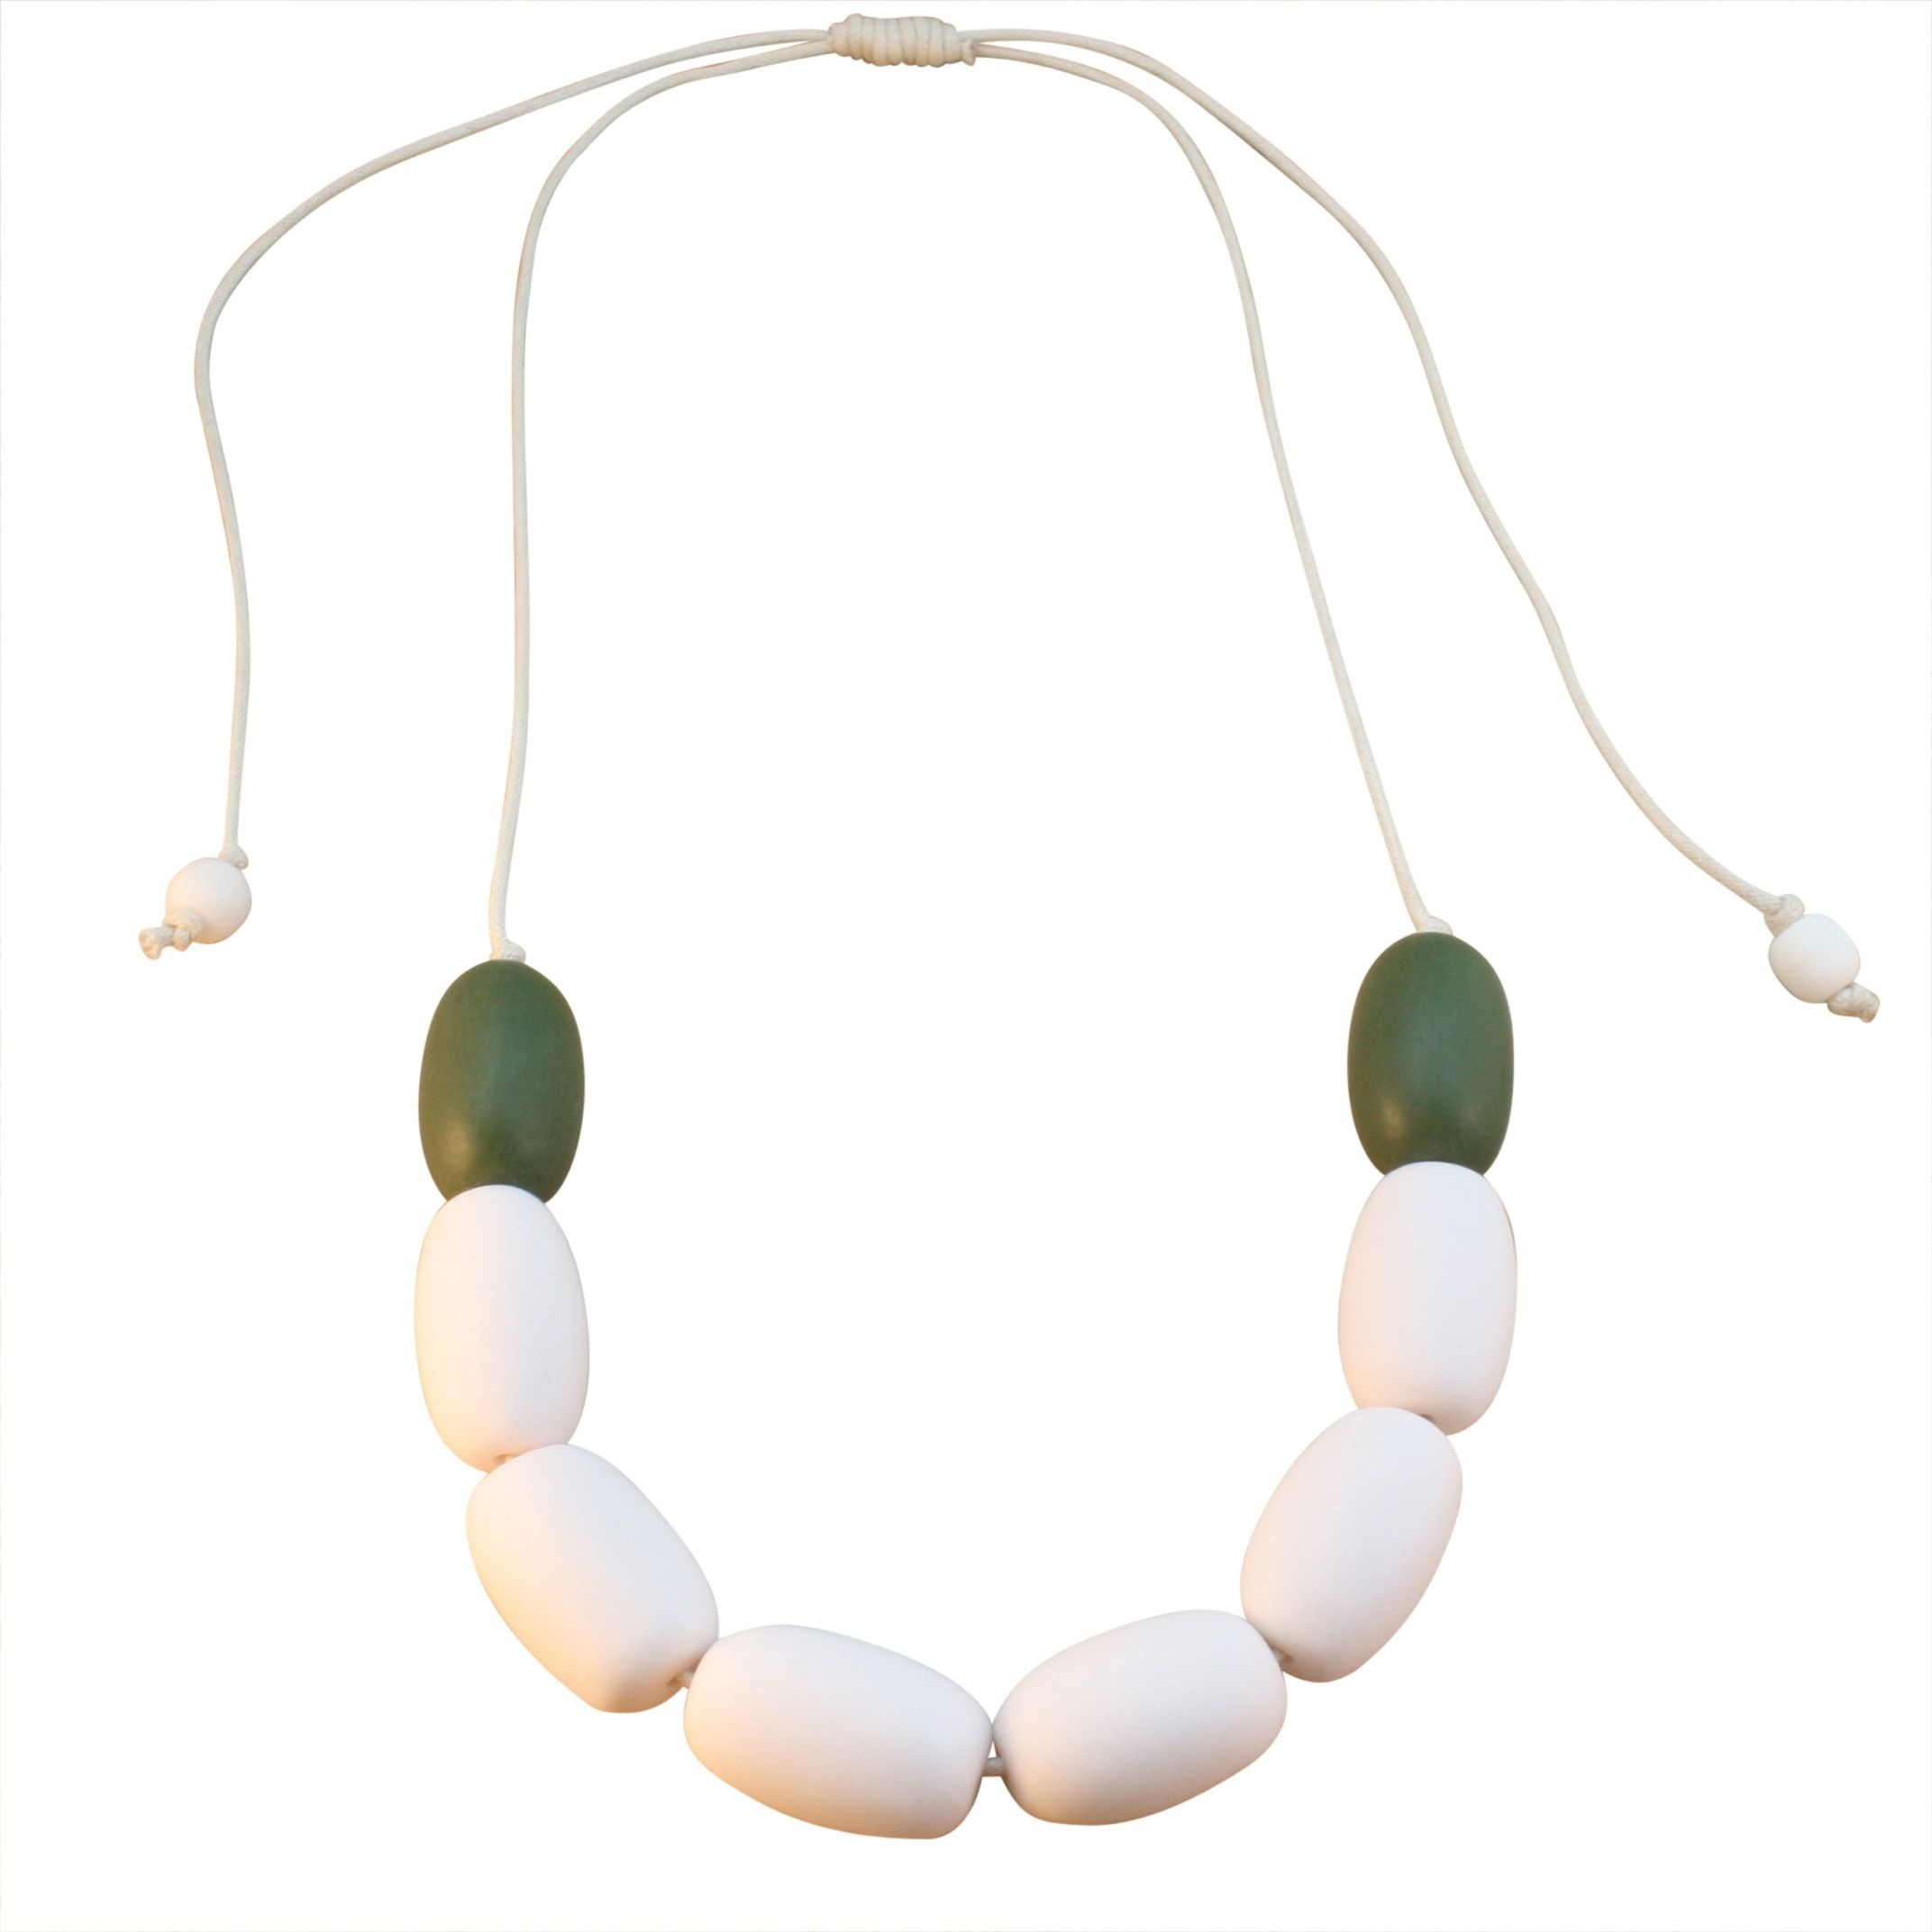 Contrast resin adjustable necklace - white and olive green